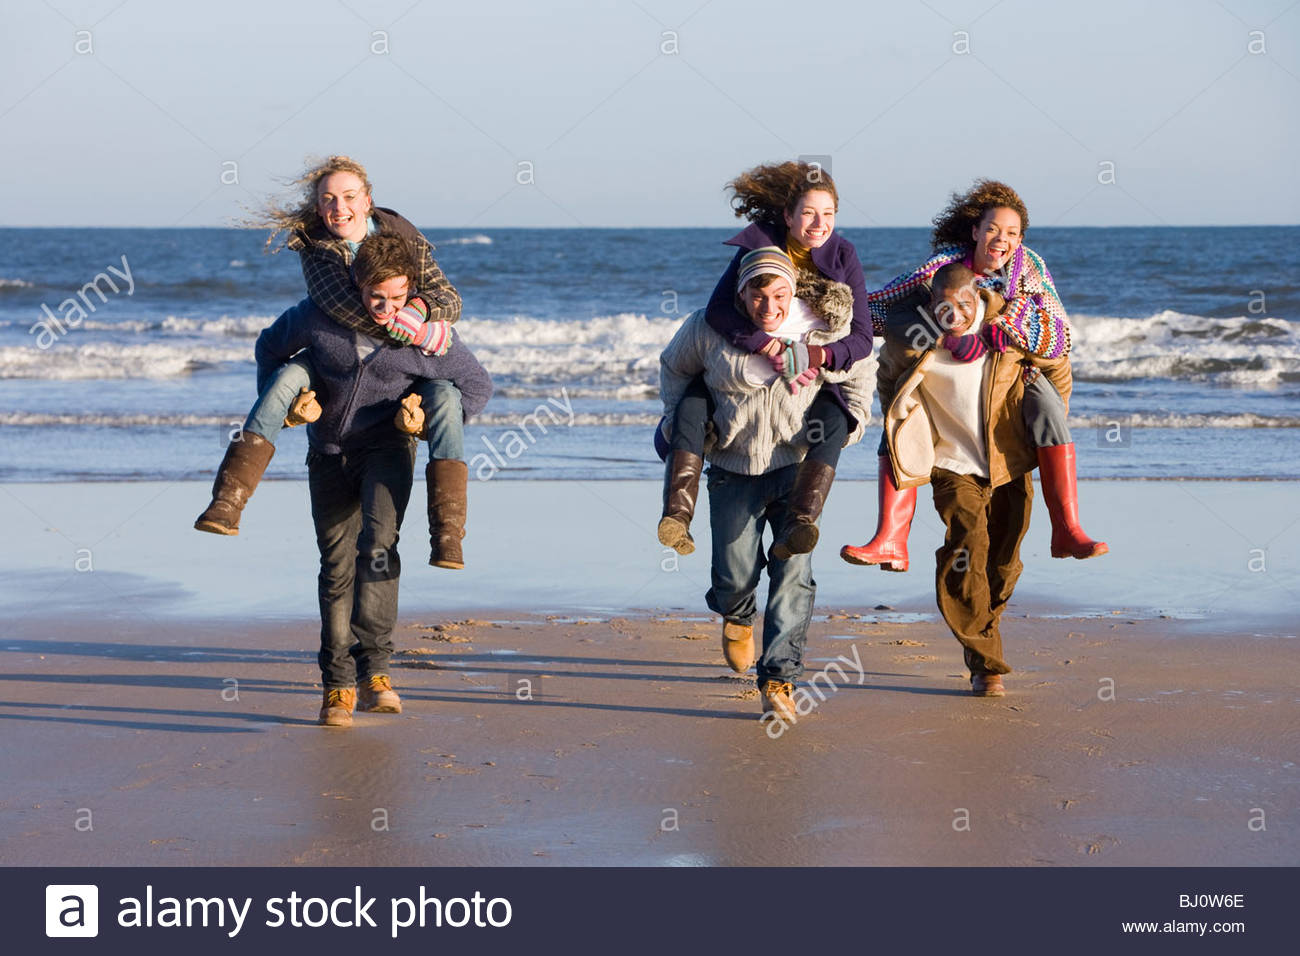 Friends giving piggyback rides at beach - Stock Image